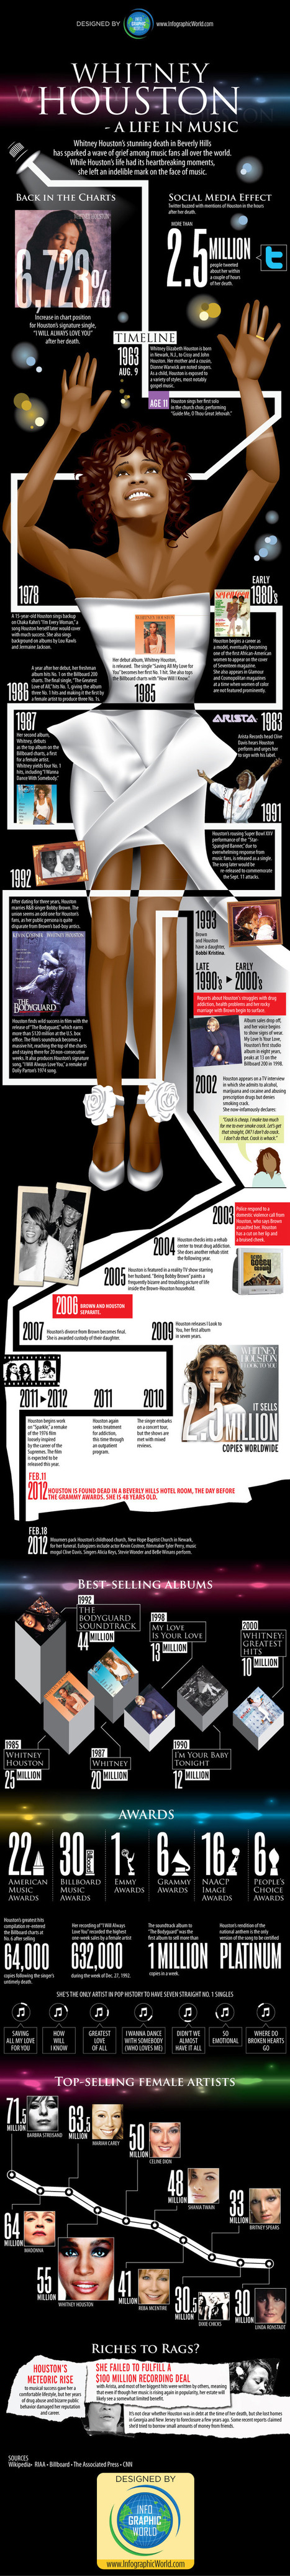 Whitney Houston: A Life in Music | INFOGRAPHICS | Scoop.it